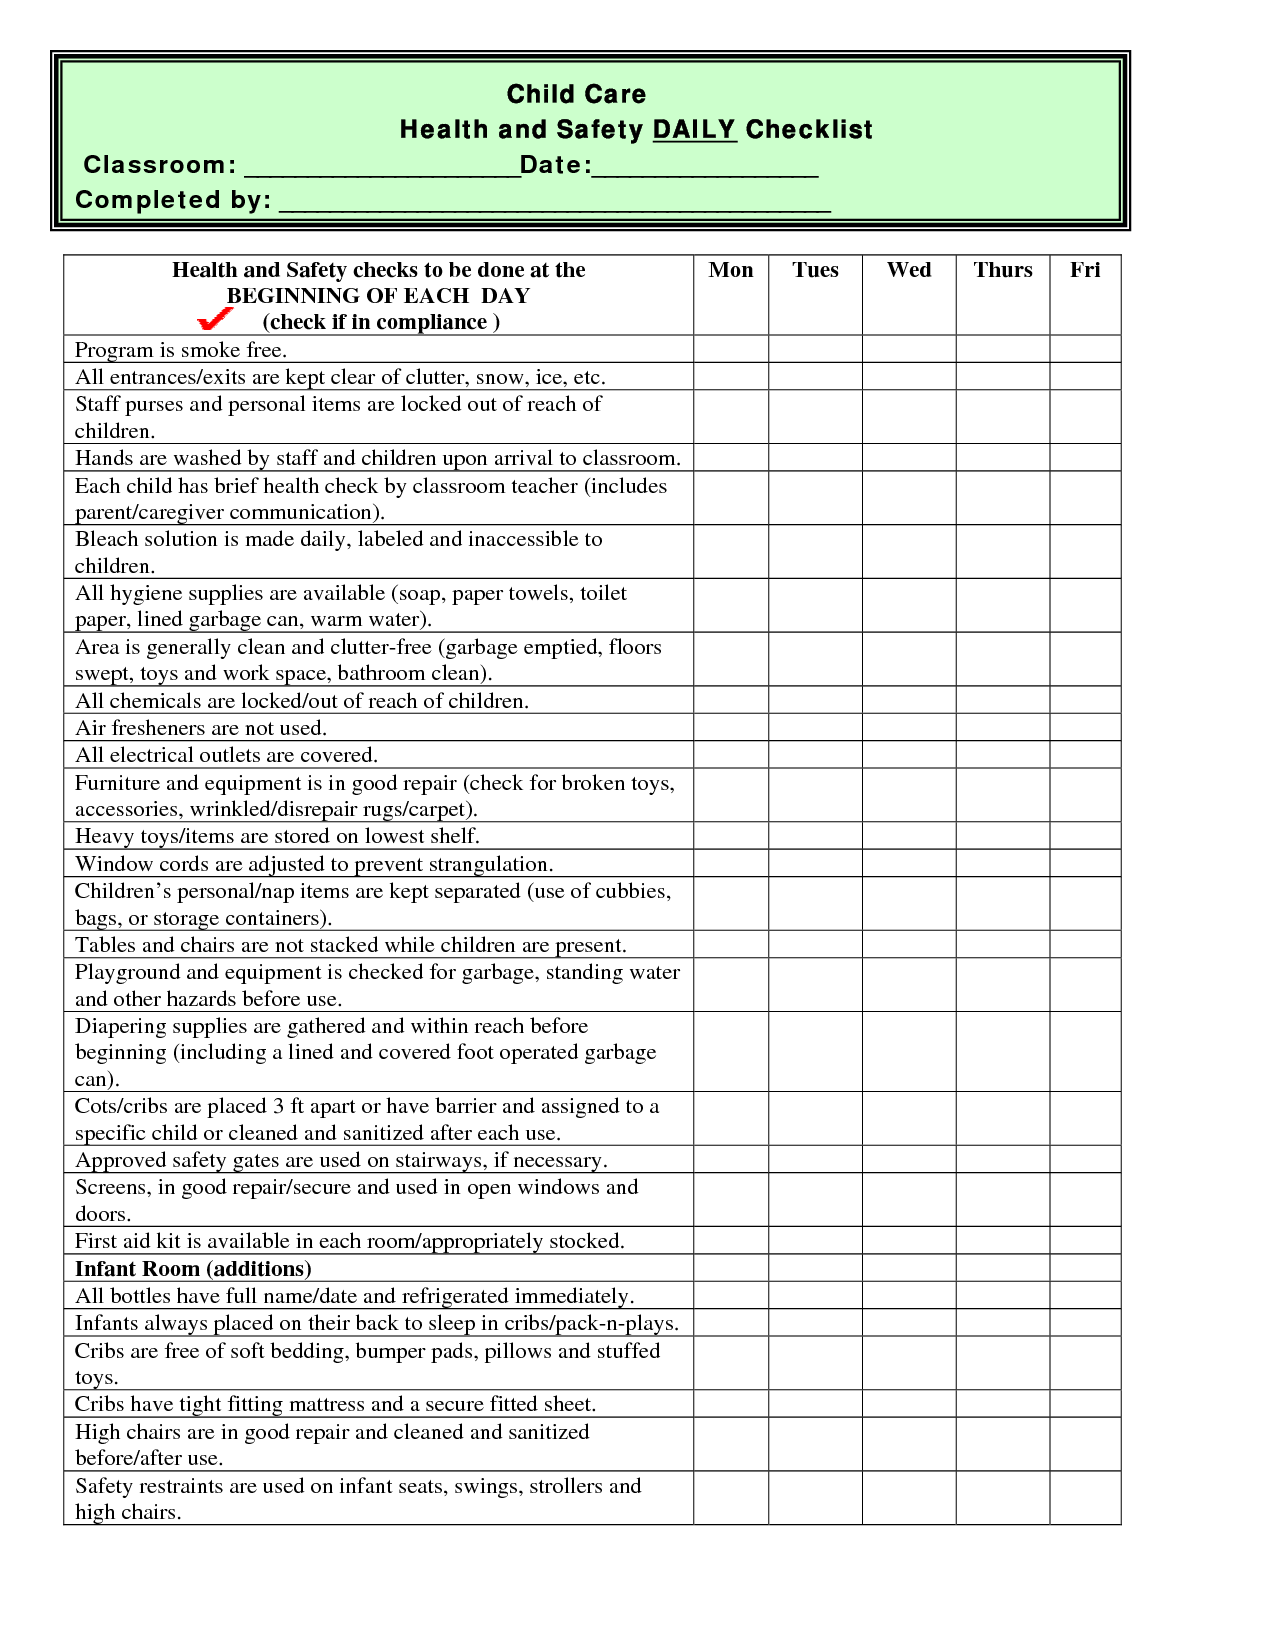 Child Care Health And Safety Daily Checklist Classroom